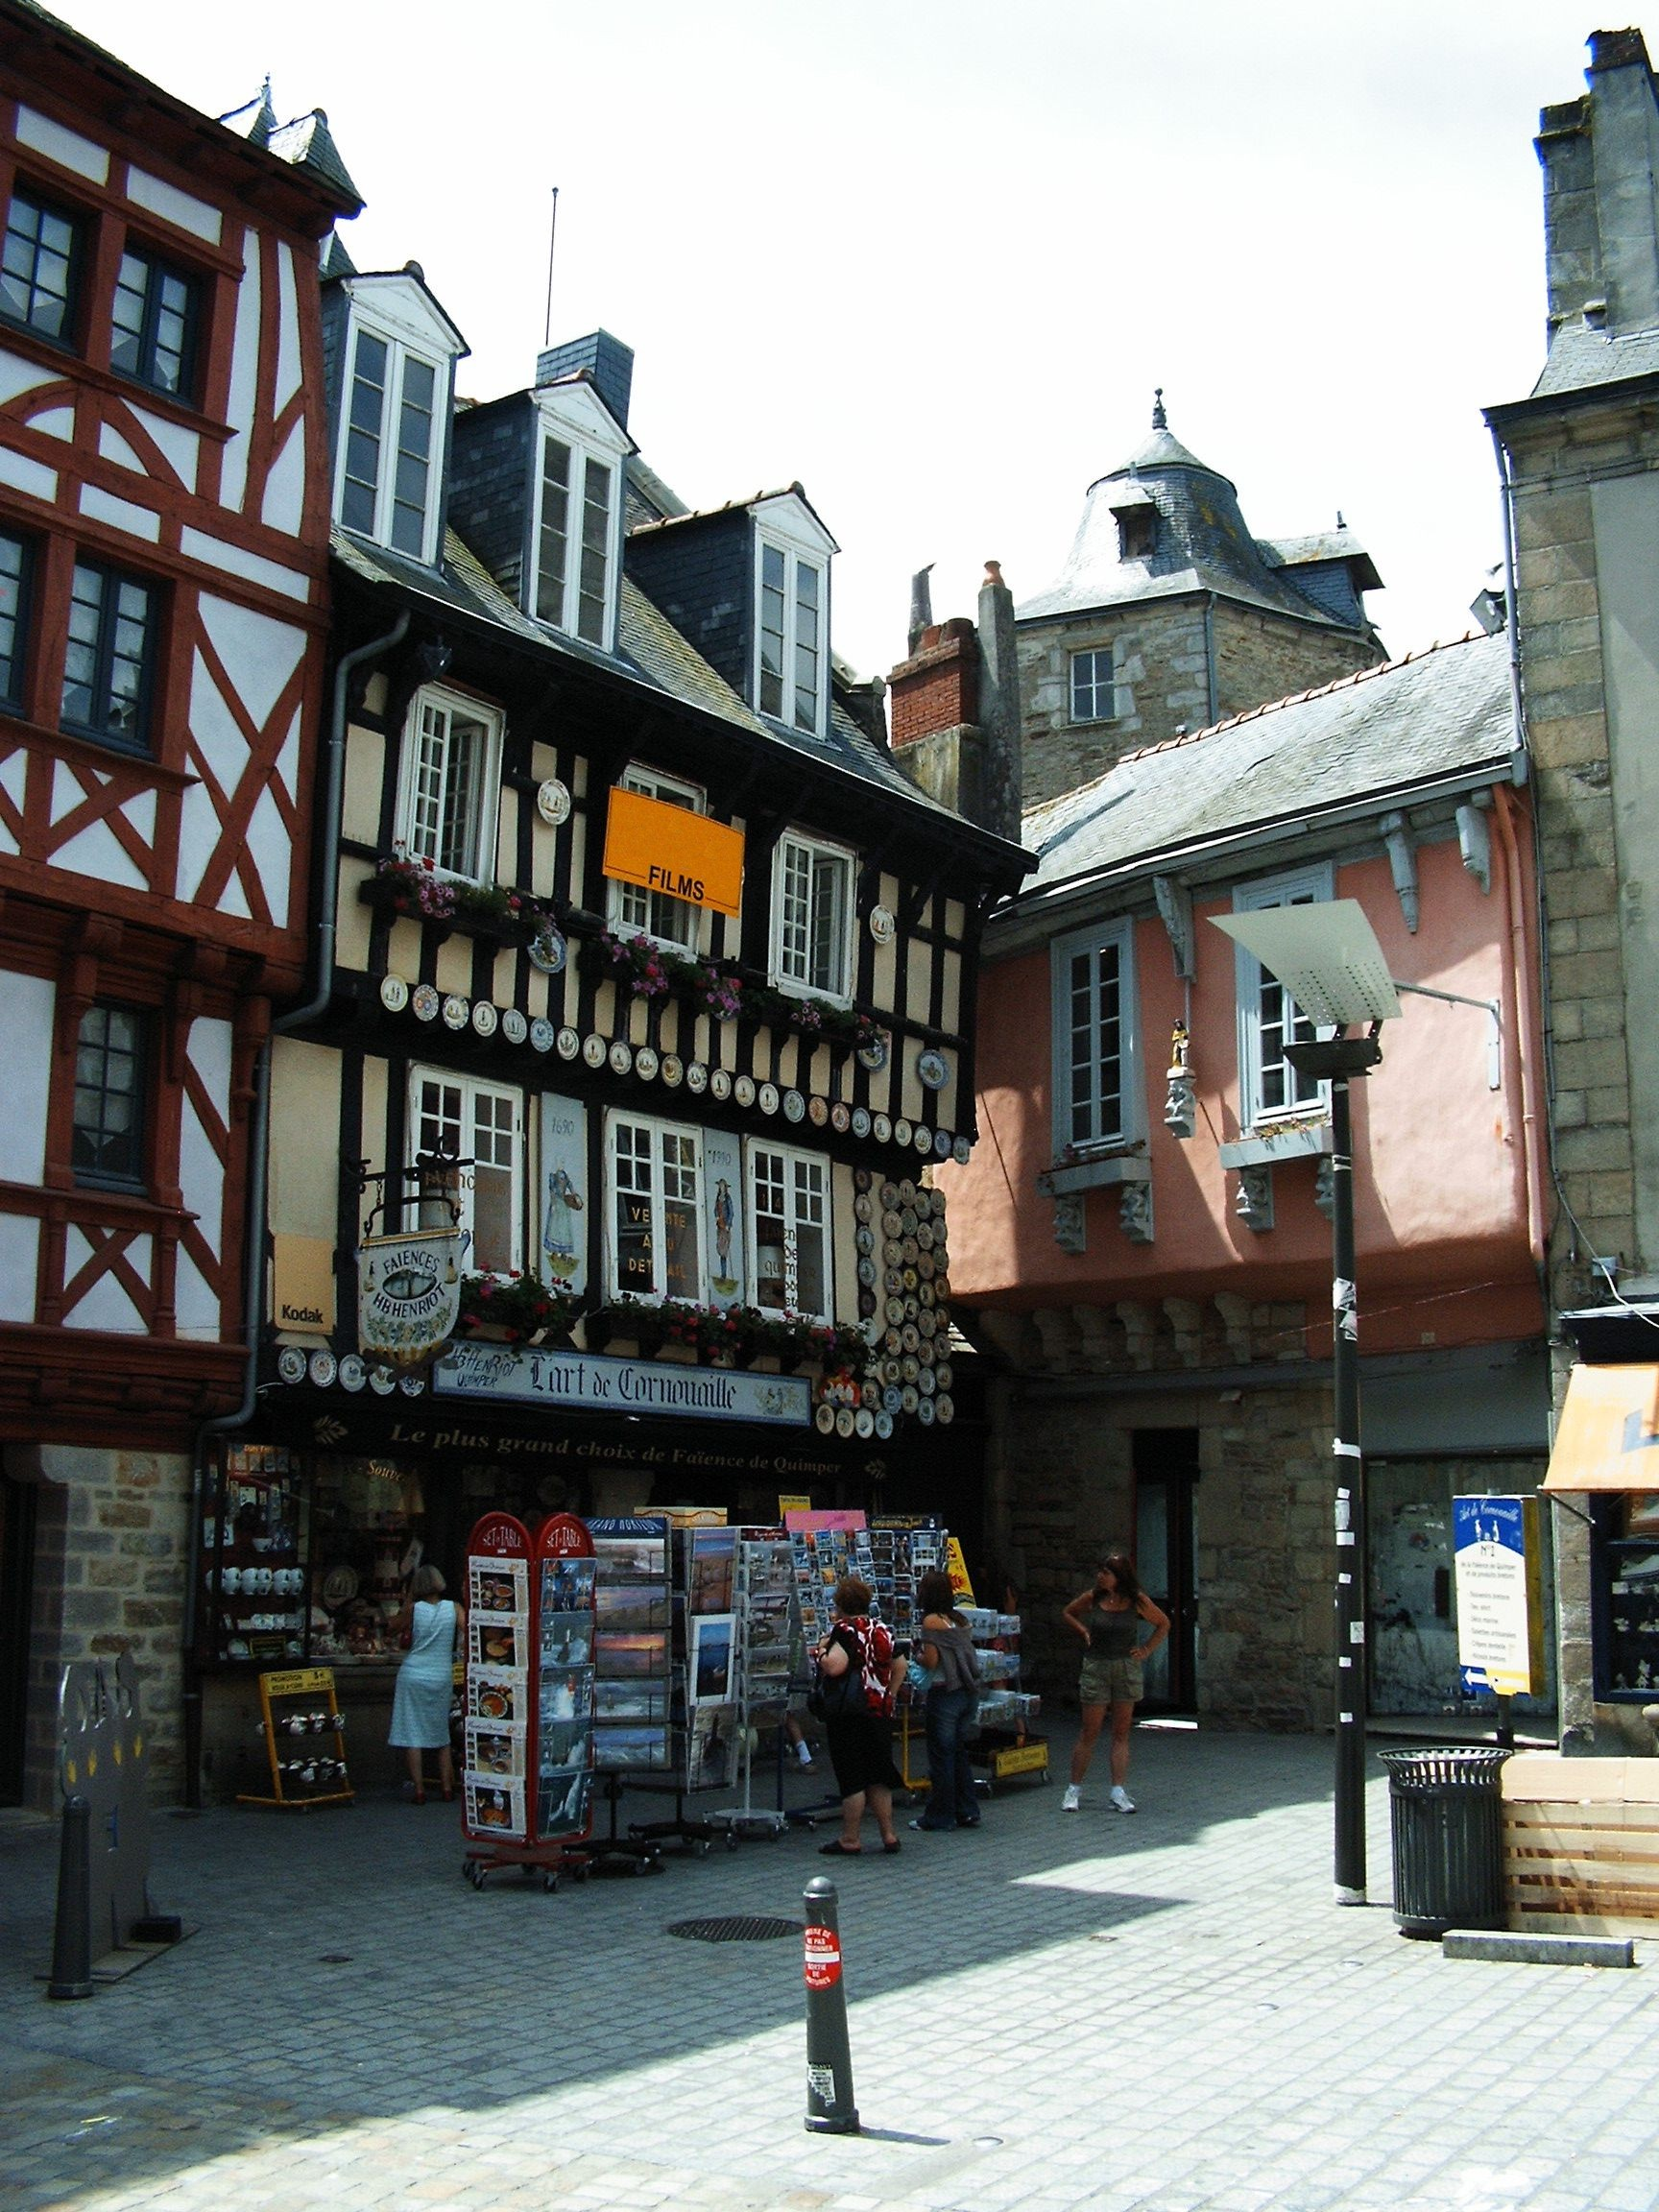 Quimper France  city photos : Bretagne Finistere Quimper 20055 Wikipedia, the free ...